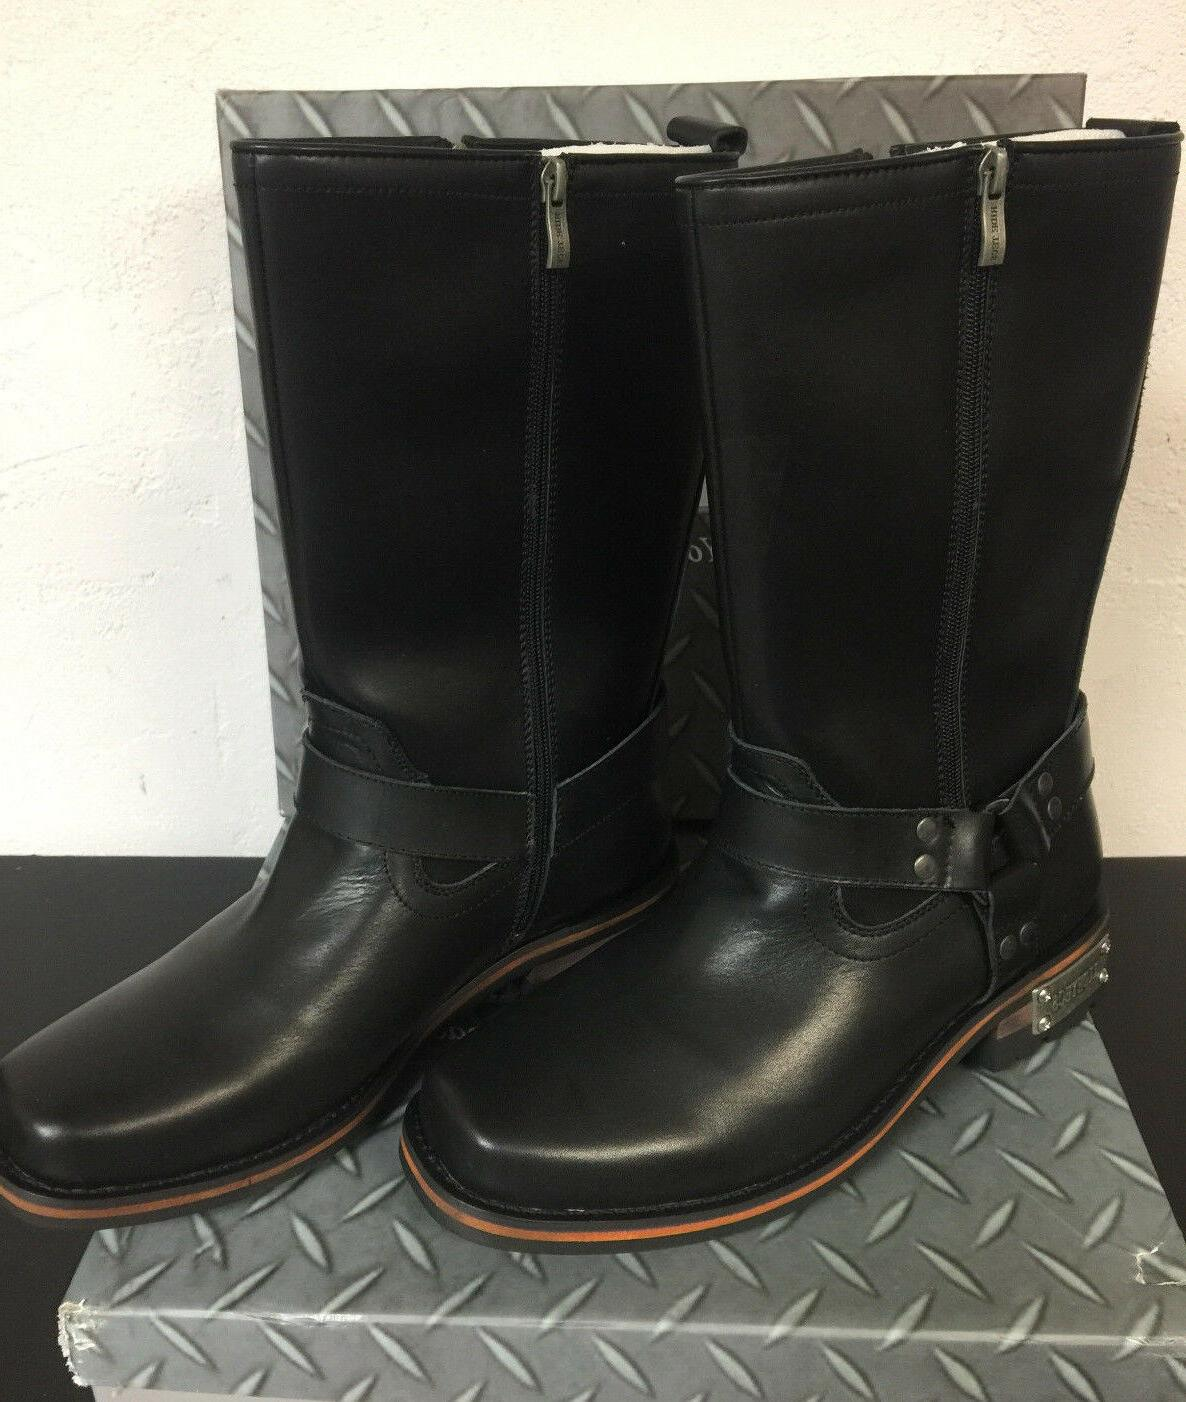 Tecs Double Boots Motorcycle 1501